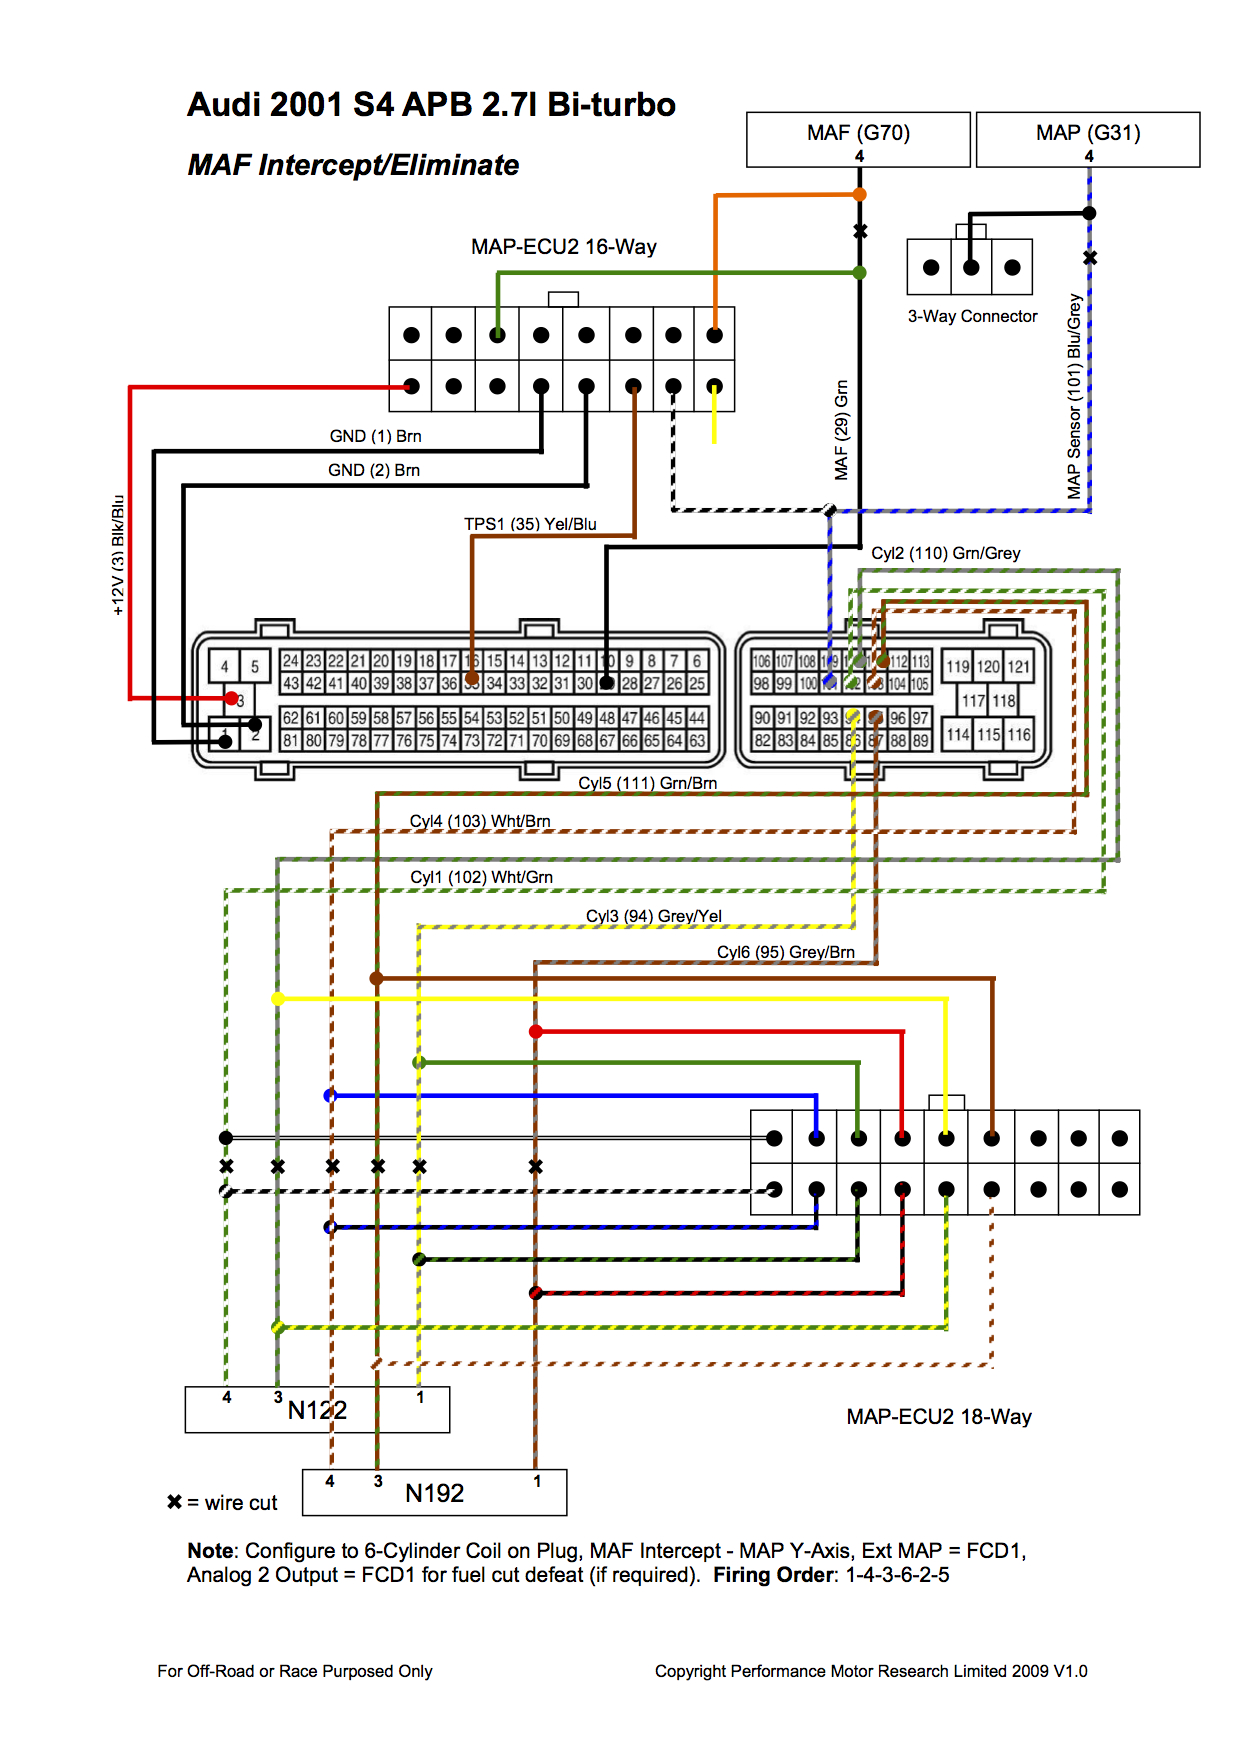 Audi S4 20011 lexus v8 vvti wiring diagram lexus wiring diagrams instruction  at bayanpartner.co